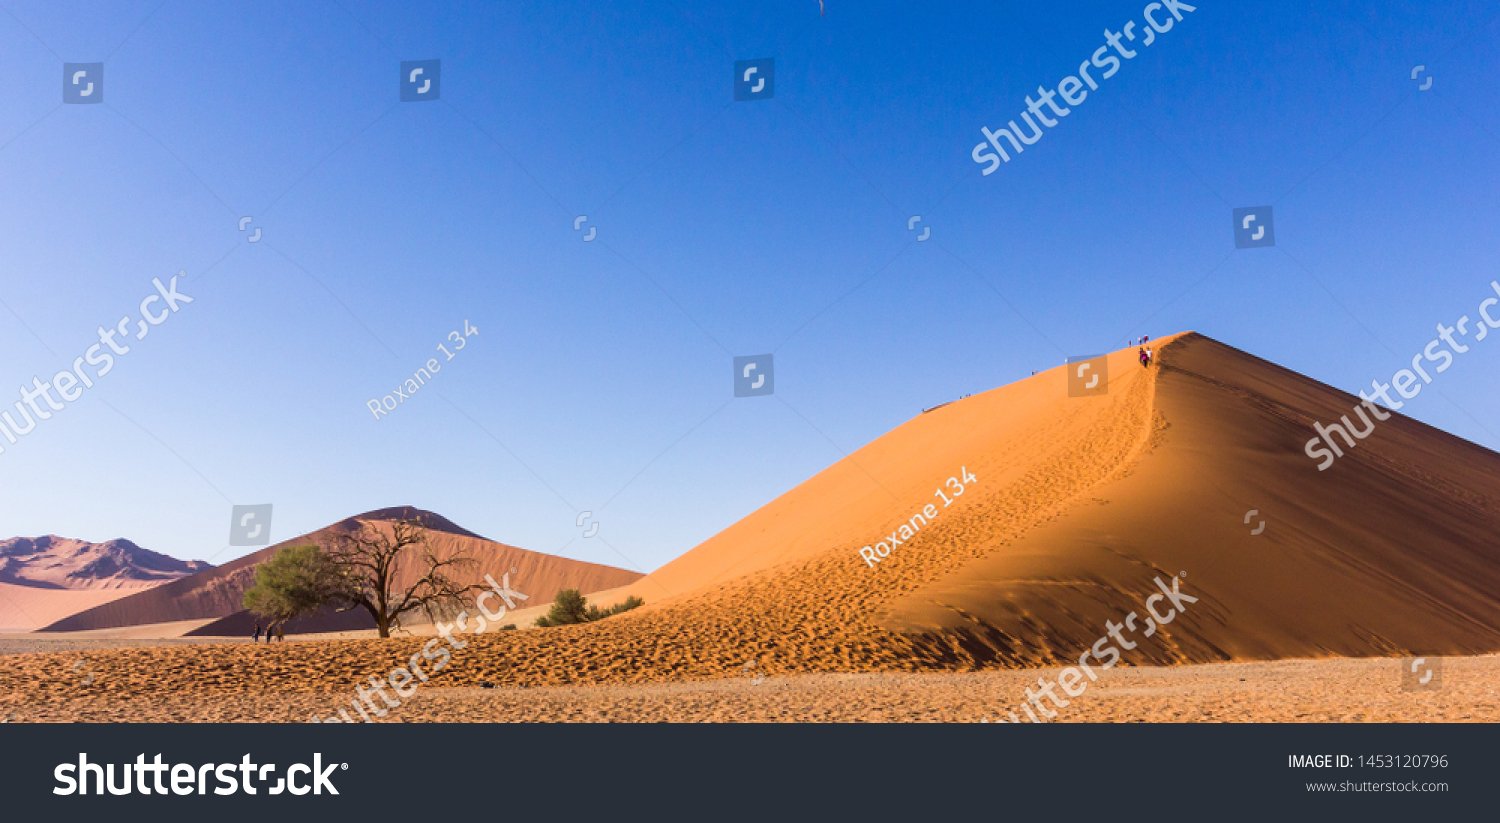 famous and iconic African landscape scene of dune 45 in Namib Naukluft national park in Namibia, Africa with people climbing up the huge sand dune on a cloudless Winter day in the desert environment